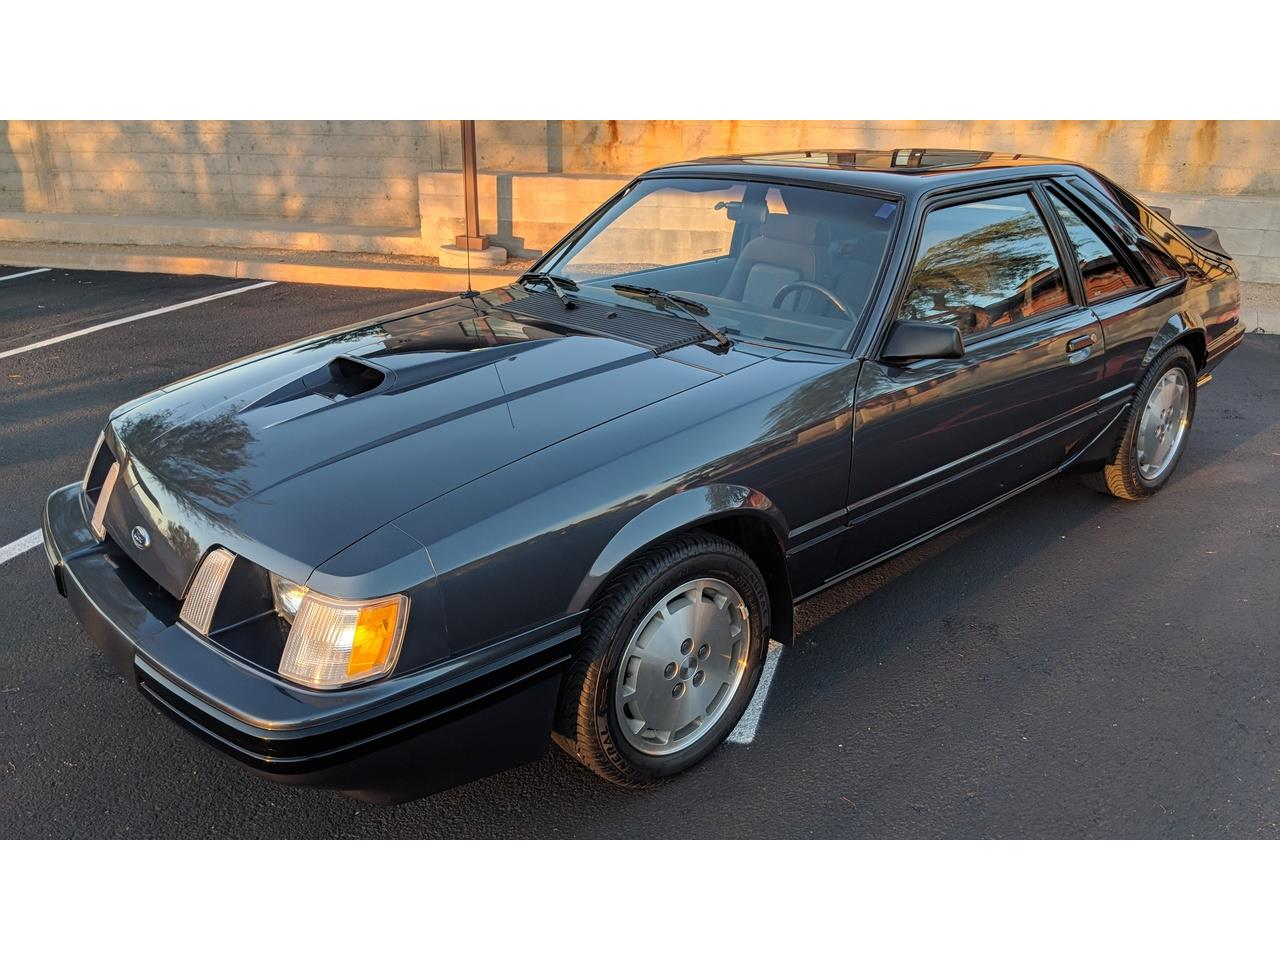 Large Picture of 1984 Mustang SVO located in Arizona - $15,800.00 - MXZ6